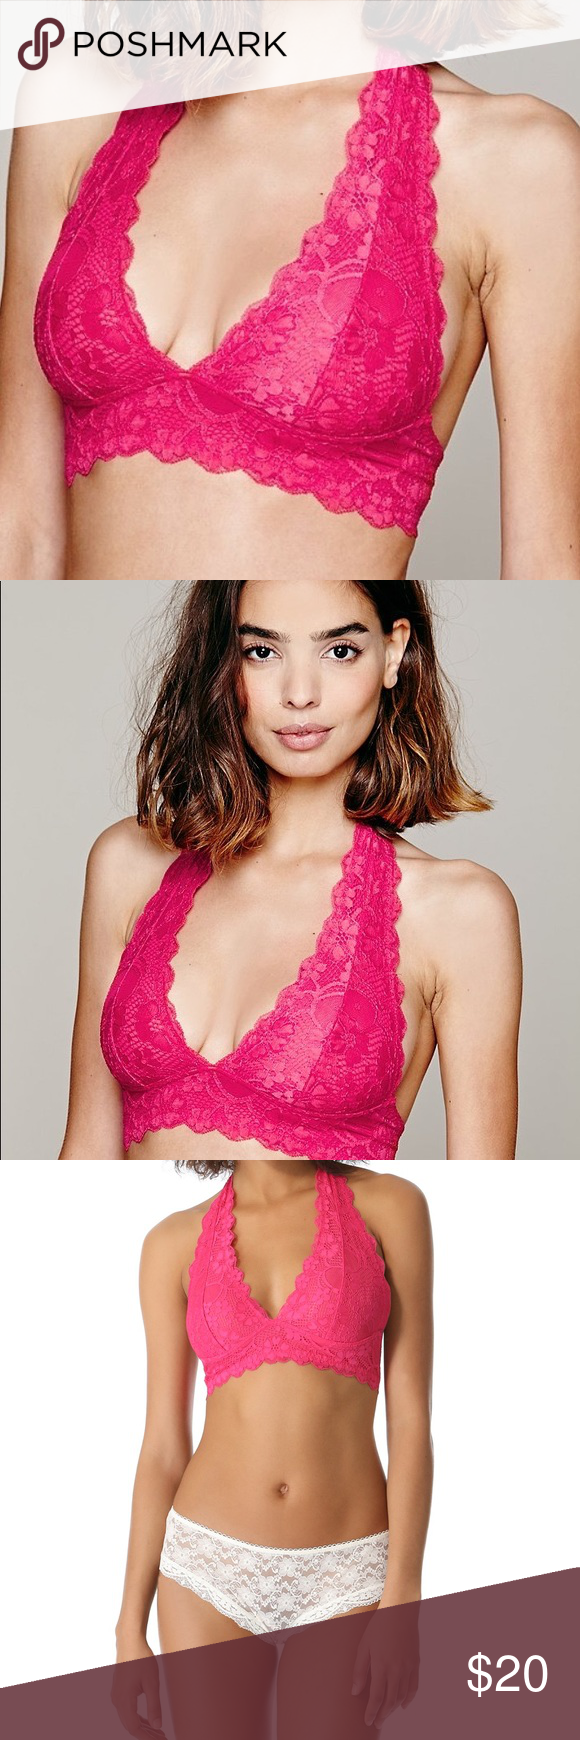 ca8d579557 Free People Galloon Lace Halter Bra Bralette S NEW Hot pink bralette  Summery gorgeous bright color Size small Brand new! Free People Intimates    Sleepwear ...